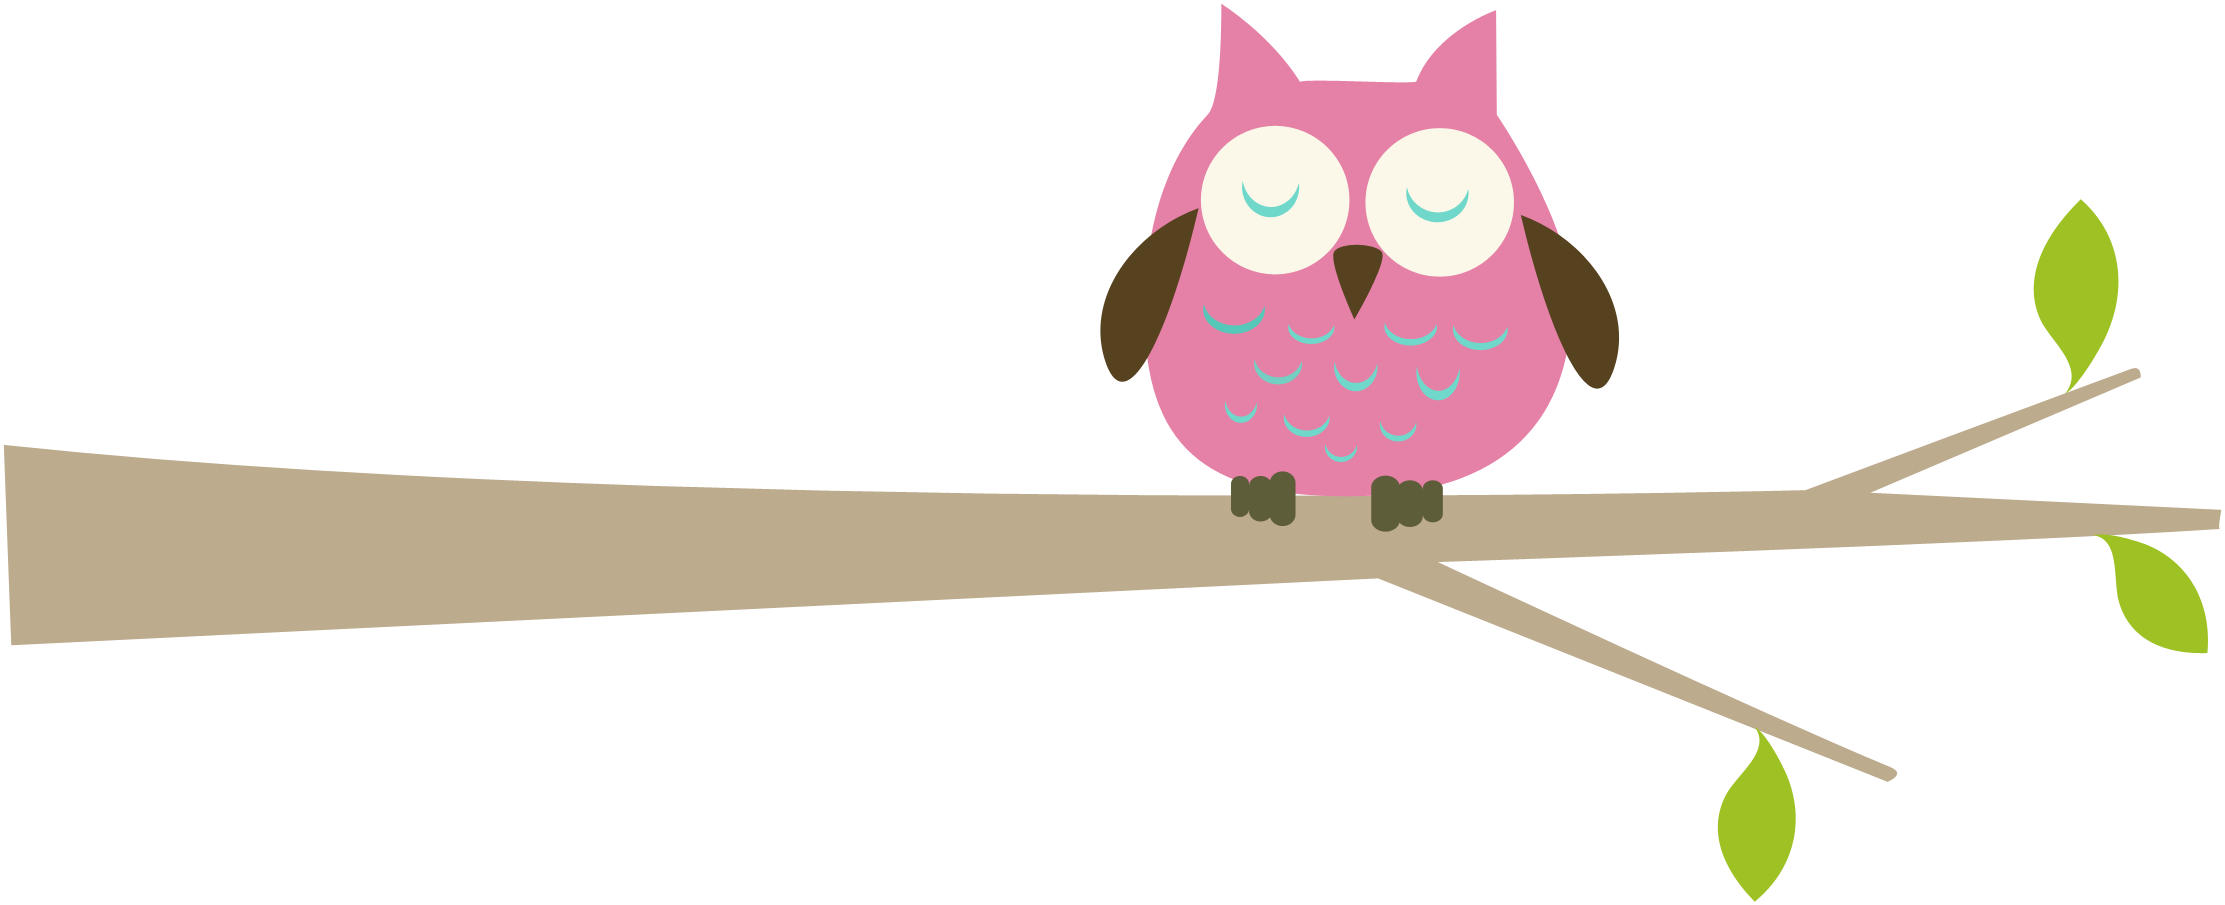 Related Keywords & Suggestions for Owl Tree Branch Clip Art.